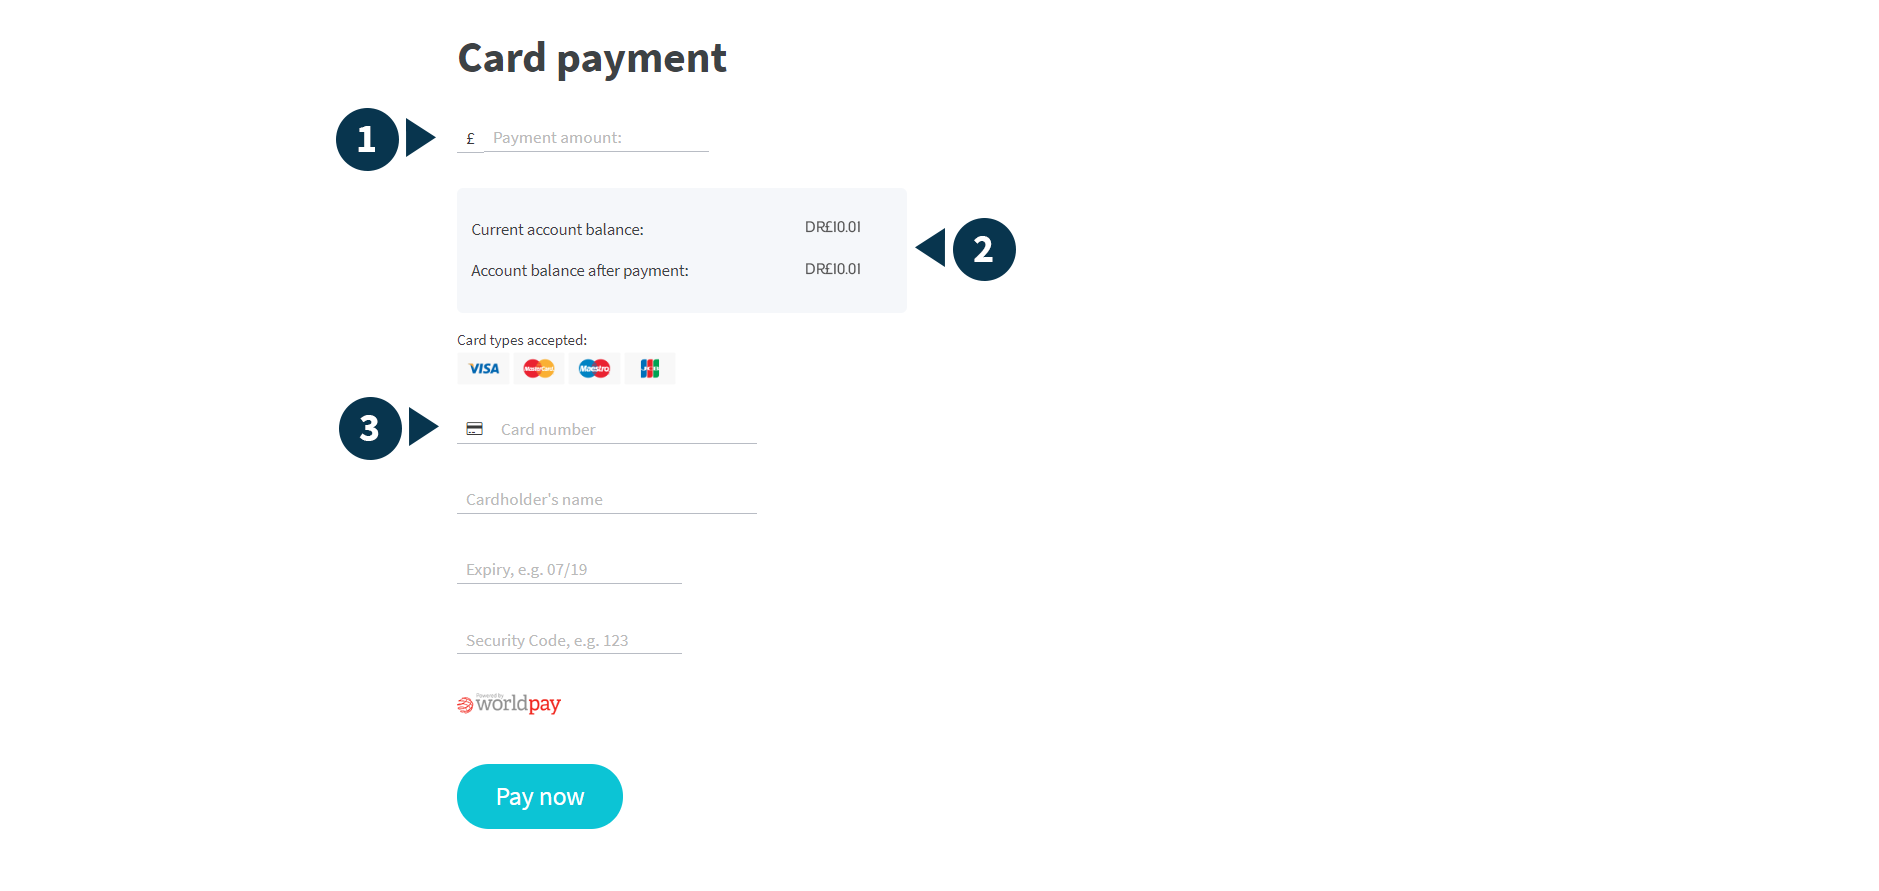 Screenshot of card payment page with parts numbered 1 to 3